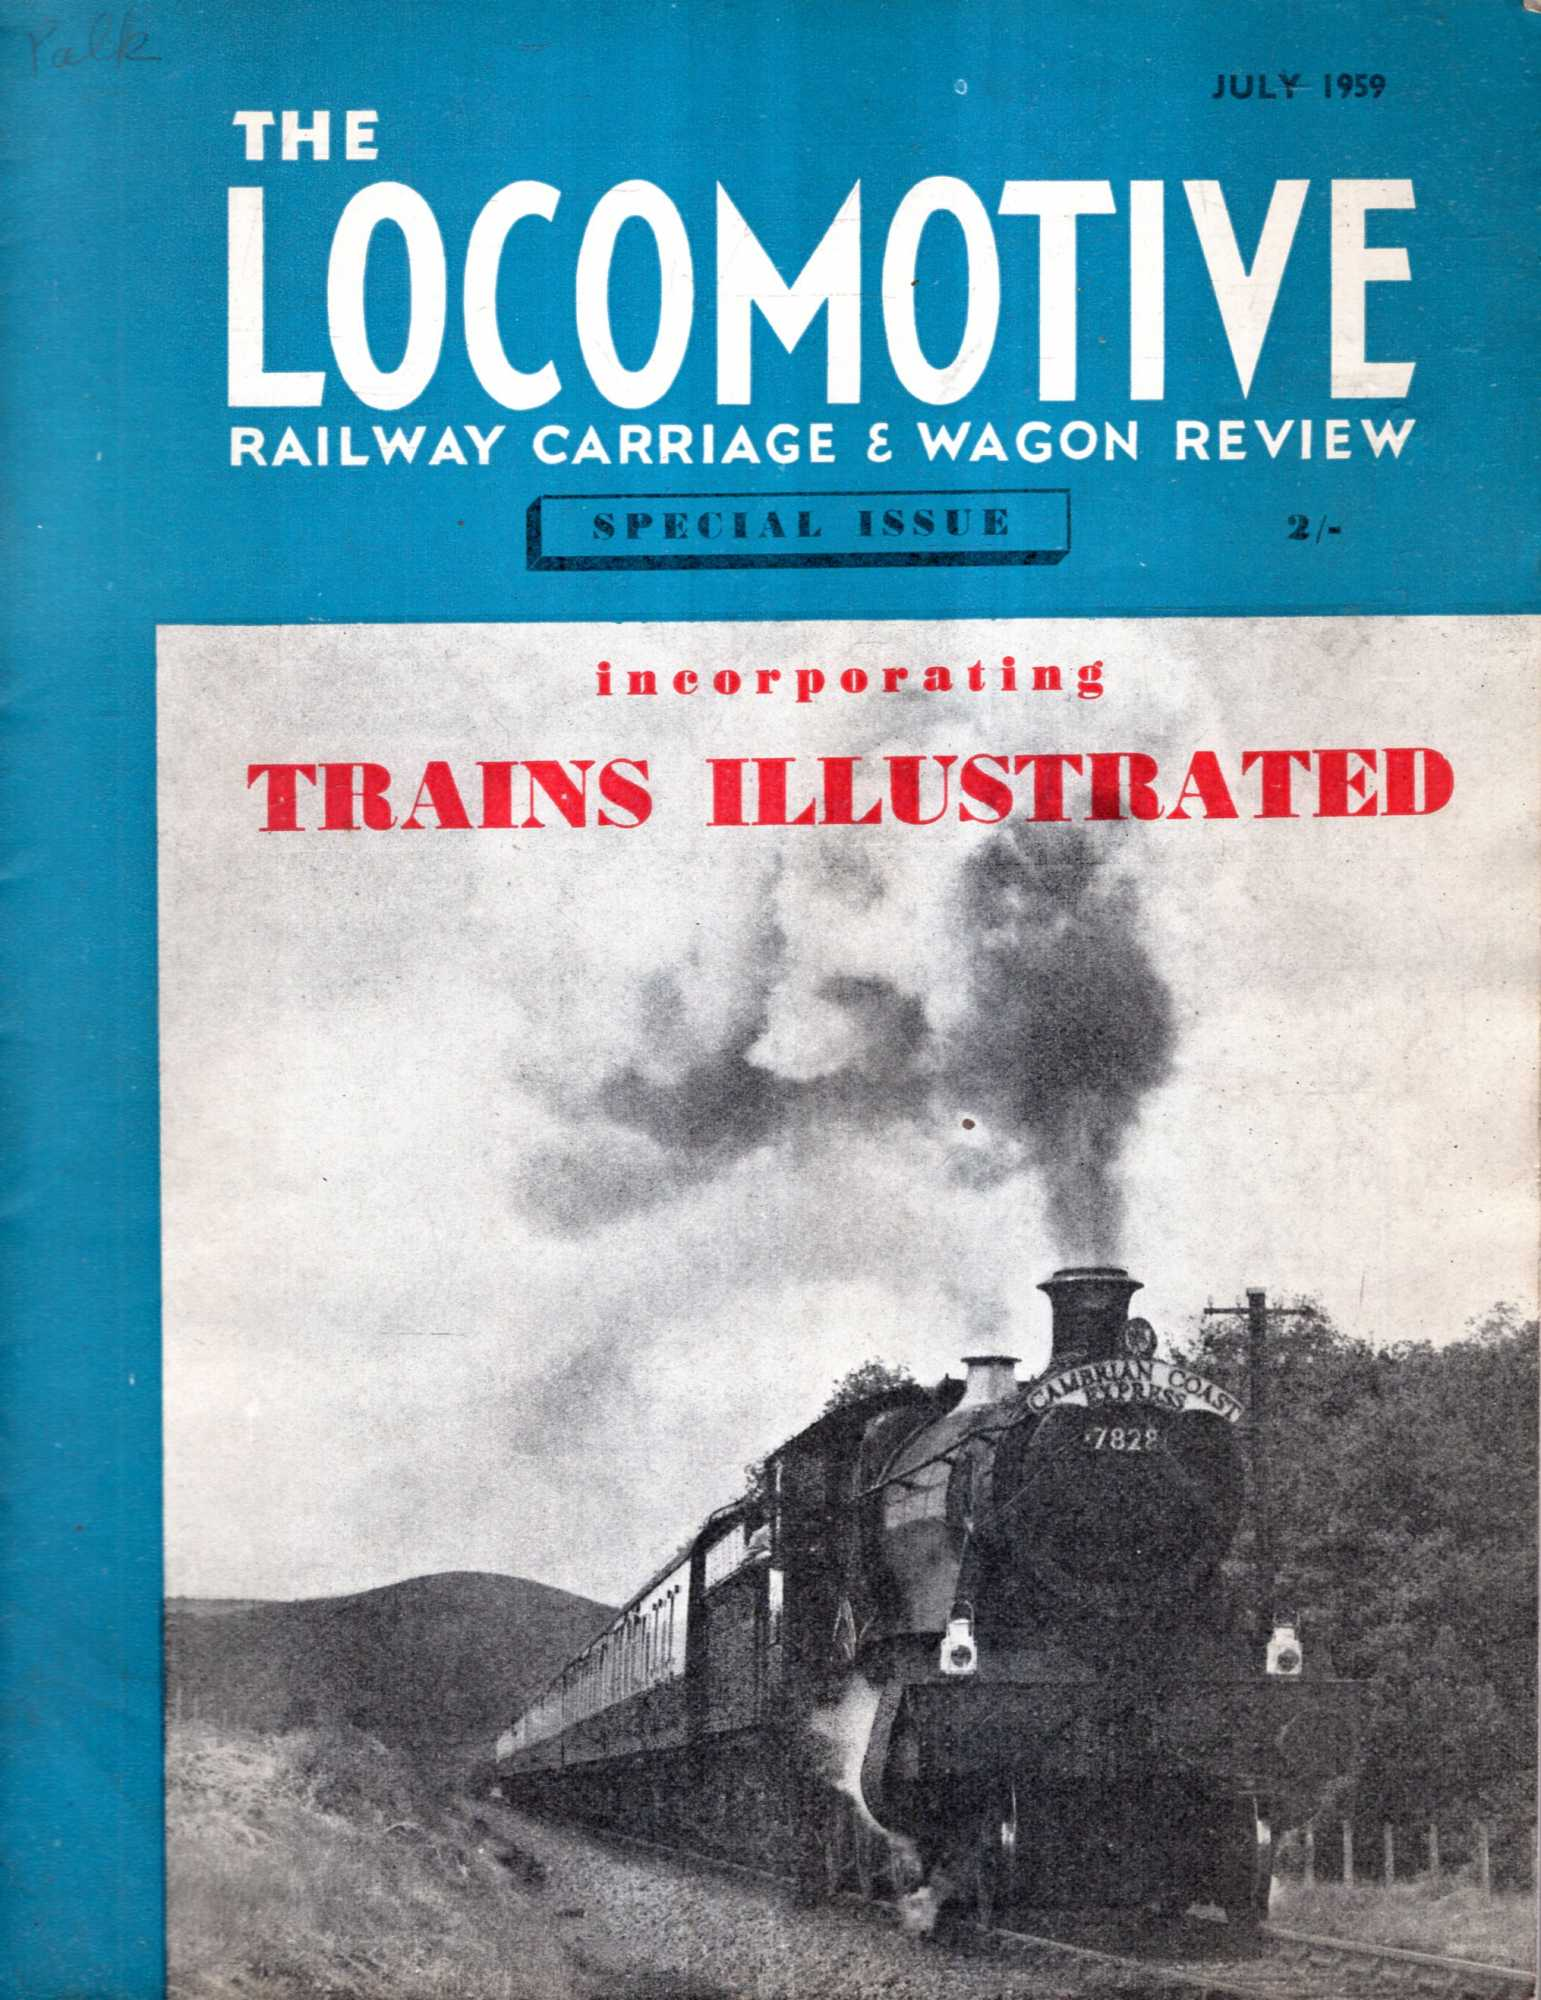 Image for The Locomotive Railway Carriage & Wagon Review: Special Issue of July 1959 incorporating Trains Illustrated